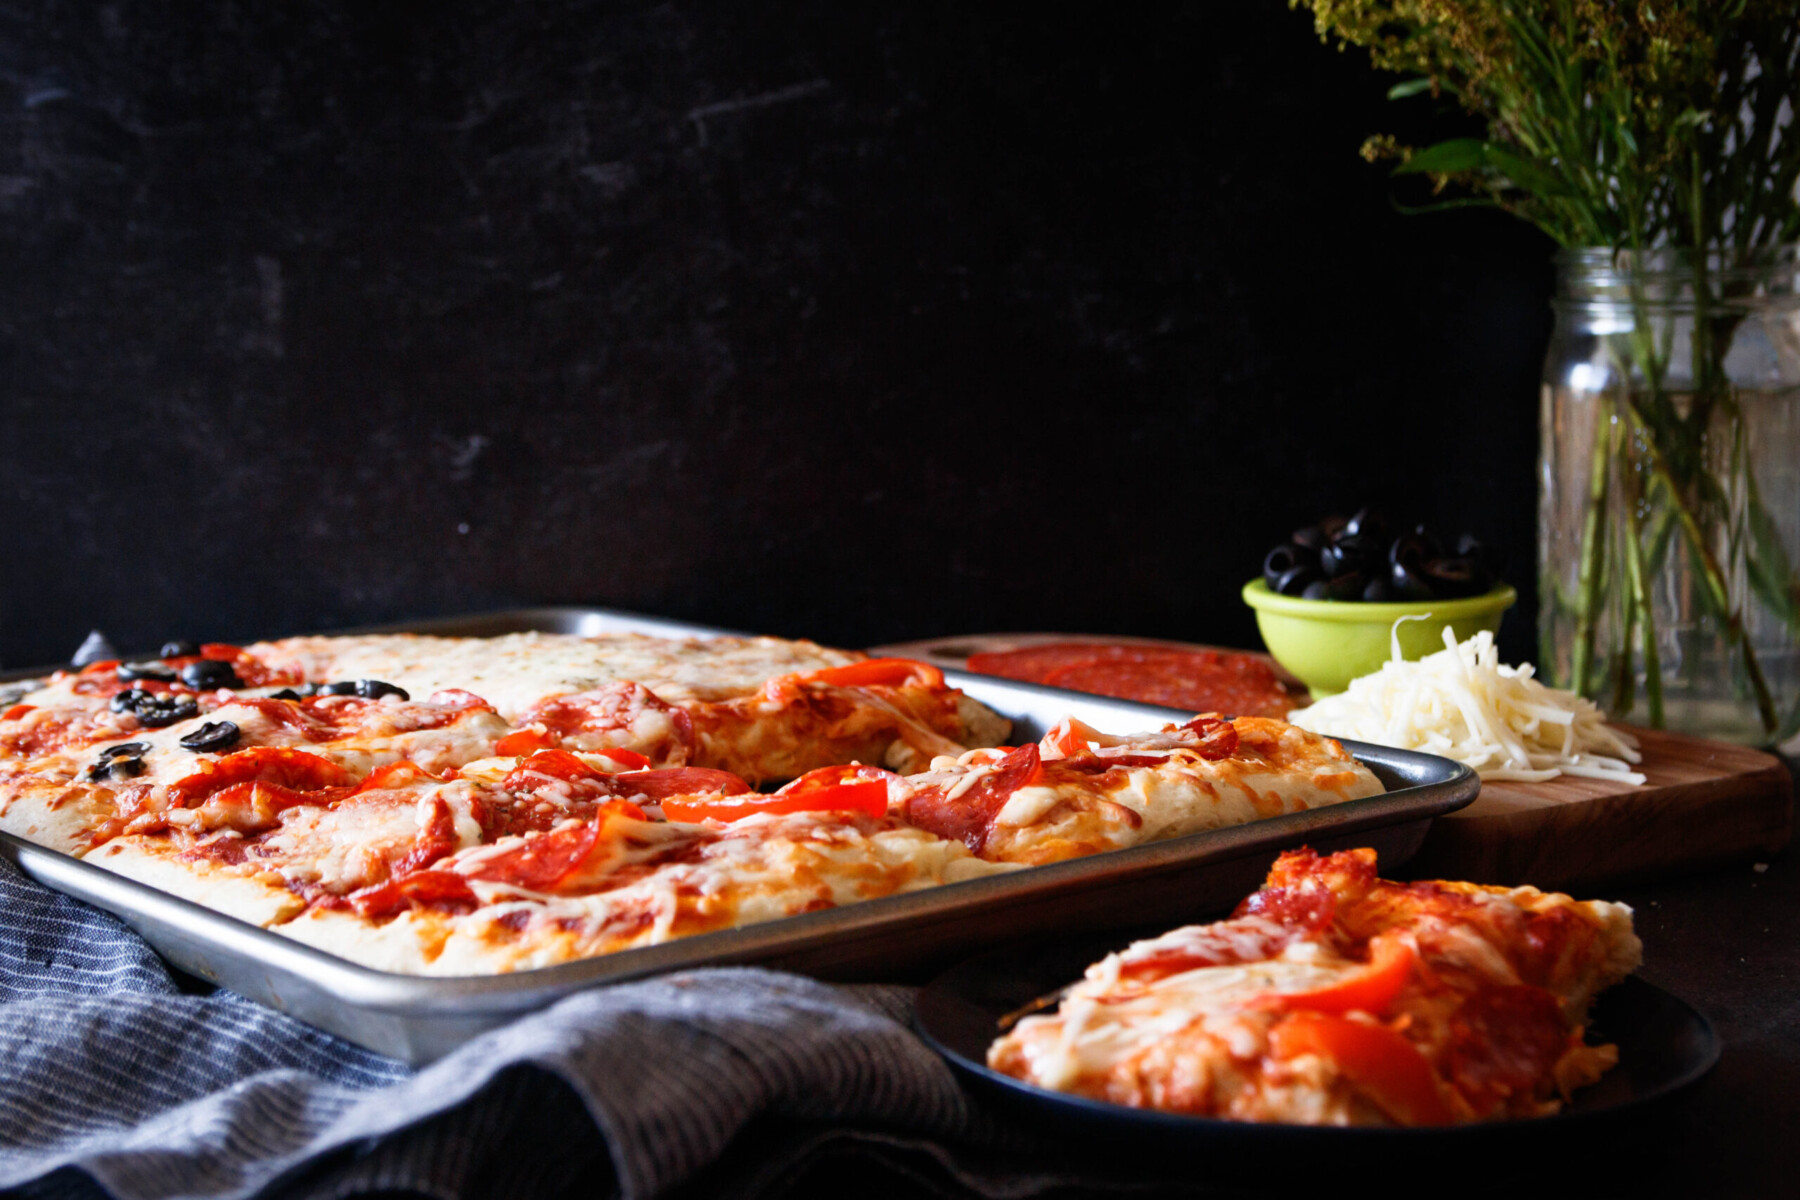 horizontal image of the pizza. There's a served slice of pizza in the foreground of the image on a small black plate.